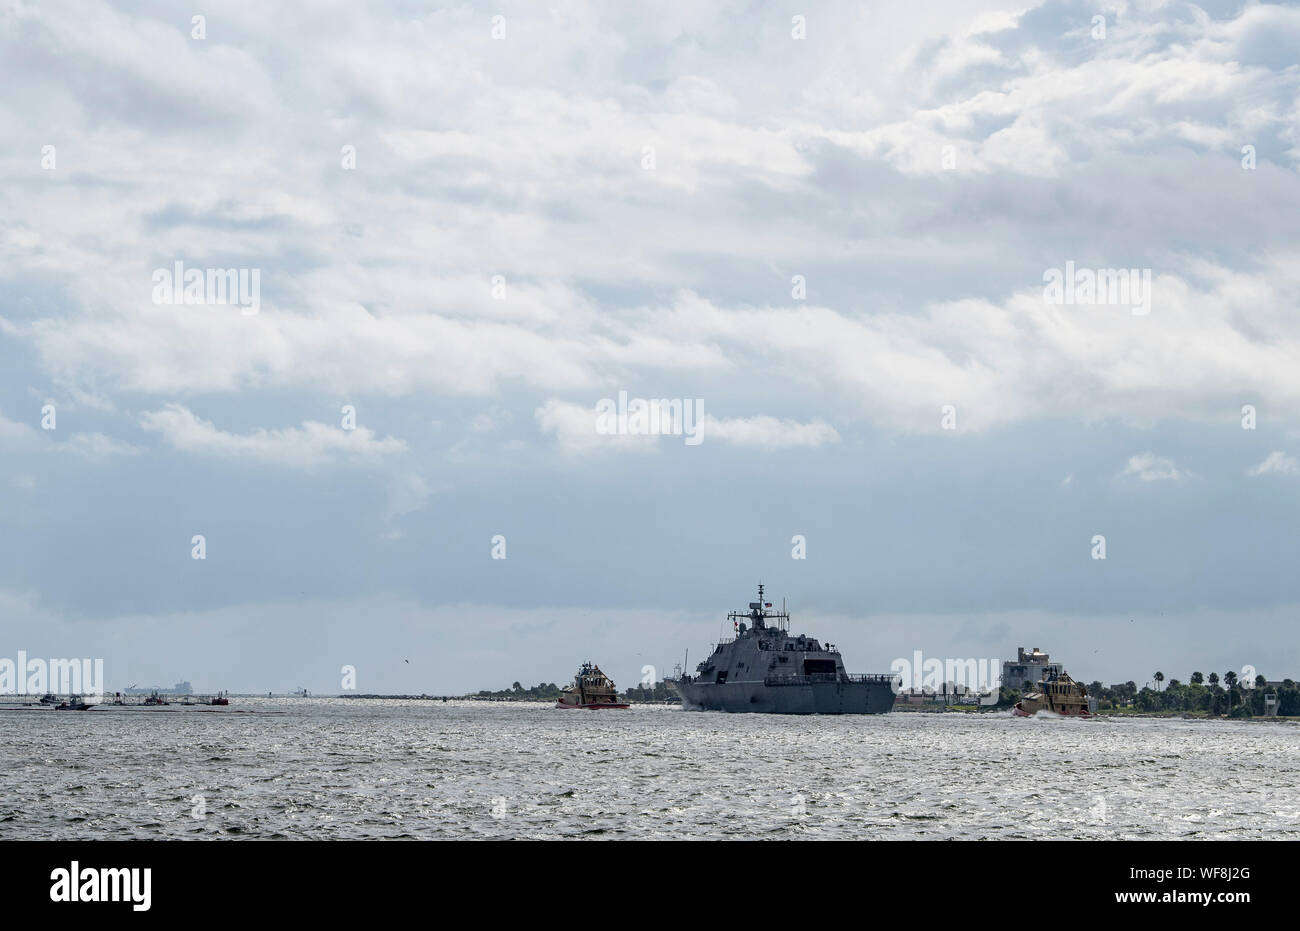 190830-N-QI061-2243  JACKSONVILLE, Fla. (Aug. 30, 2019) The Freedom-class variant littoral combat ship USS Billings (LCS 15) gets underway from Naval Station Mayport as Commander, U.S. 4th Fleet orders all U.S. Navy ships homeported in the area to sortie ahead of Hurricane Dorian, which is forecasted to bring high winds and heavy rain to the East Coast. Ships are being directed to areas in the Atlantic where they are best postured for storm avoidance. (U.S. Navy photo by Mass Communication Specialist 3rd Class Nathan T. Beard/Released) Stock Photo